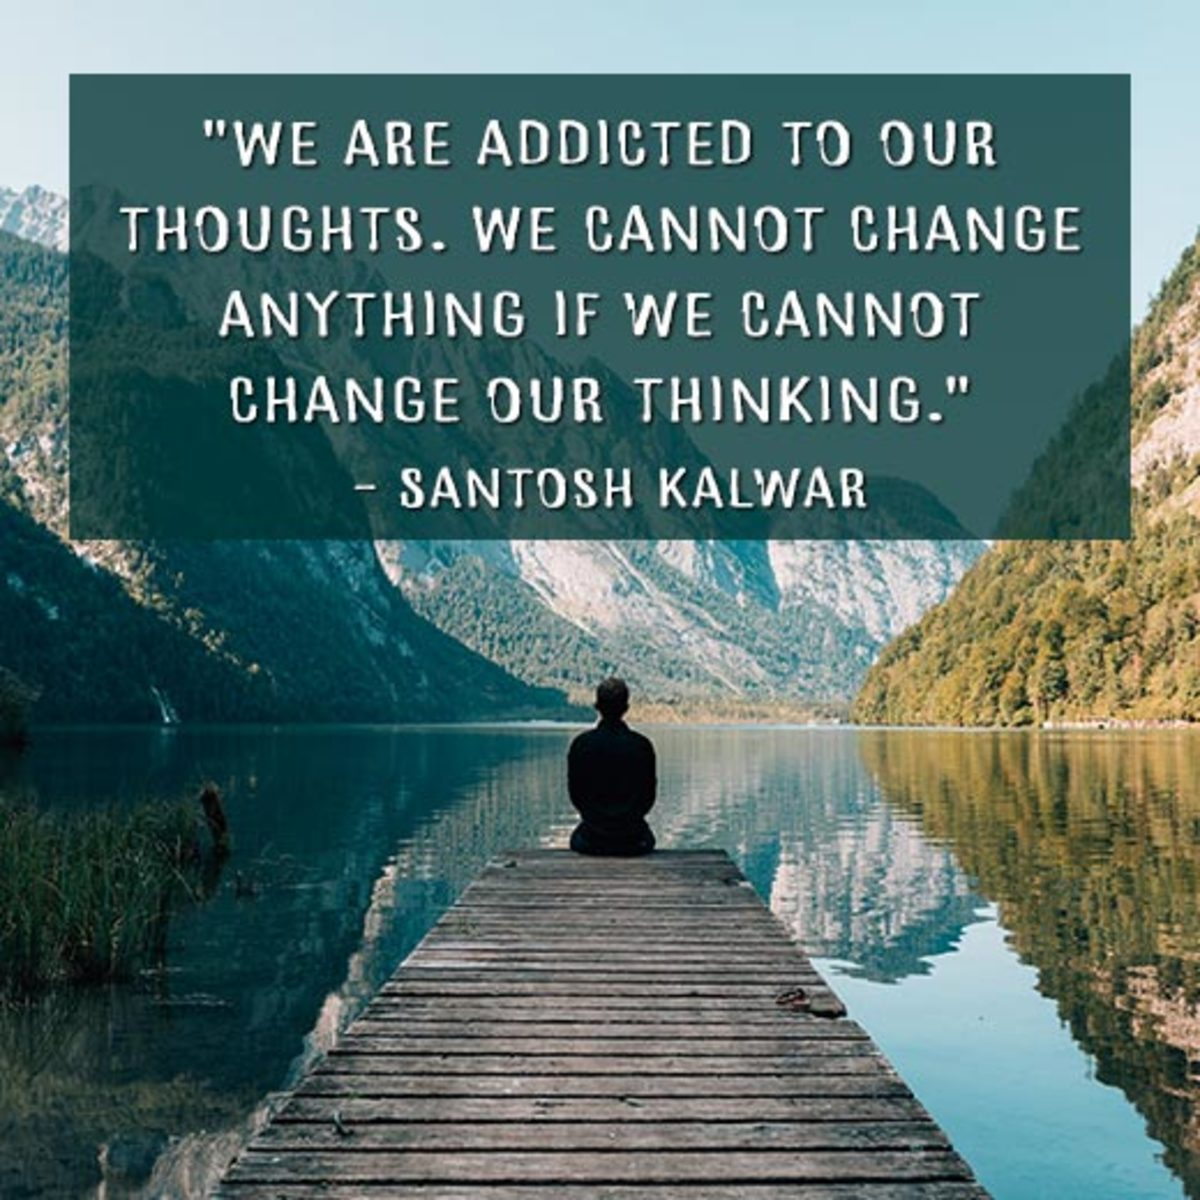 """We are addicted to our thoughts. We cannot change anything if we cannot change our thinking."" —Santosh Kalwar"